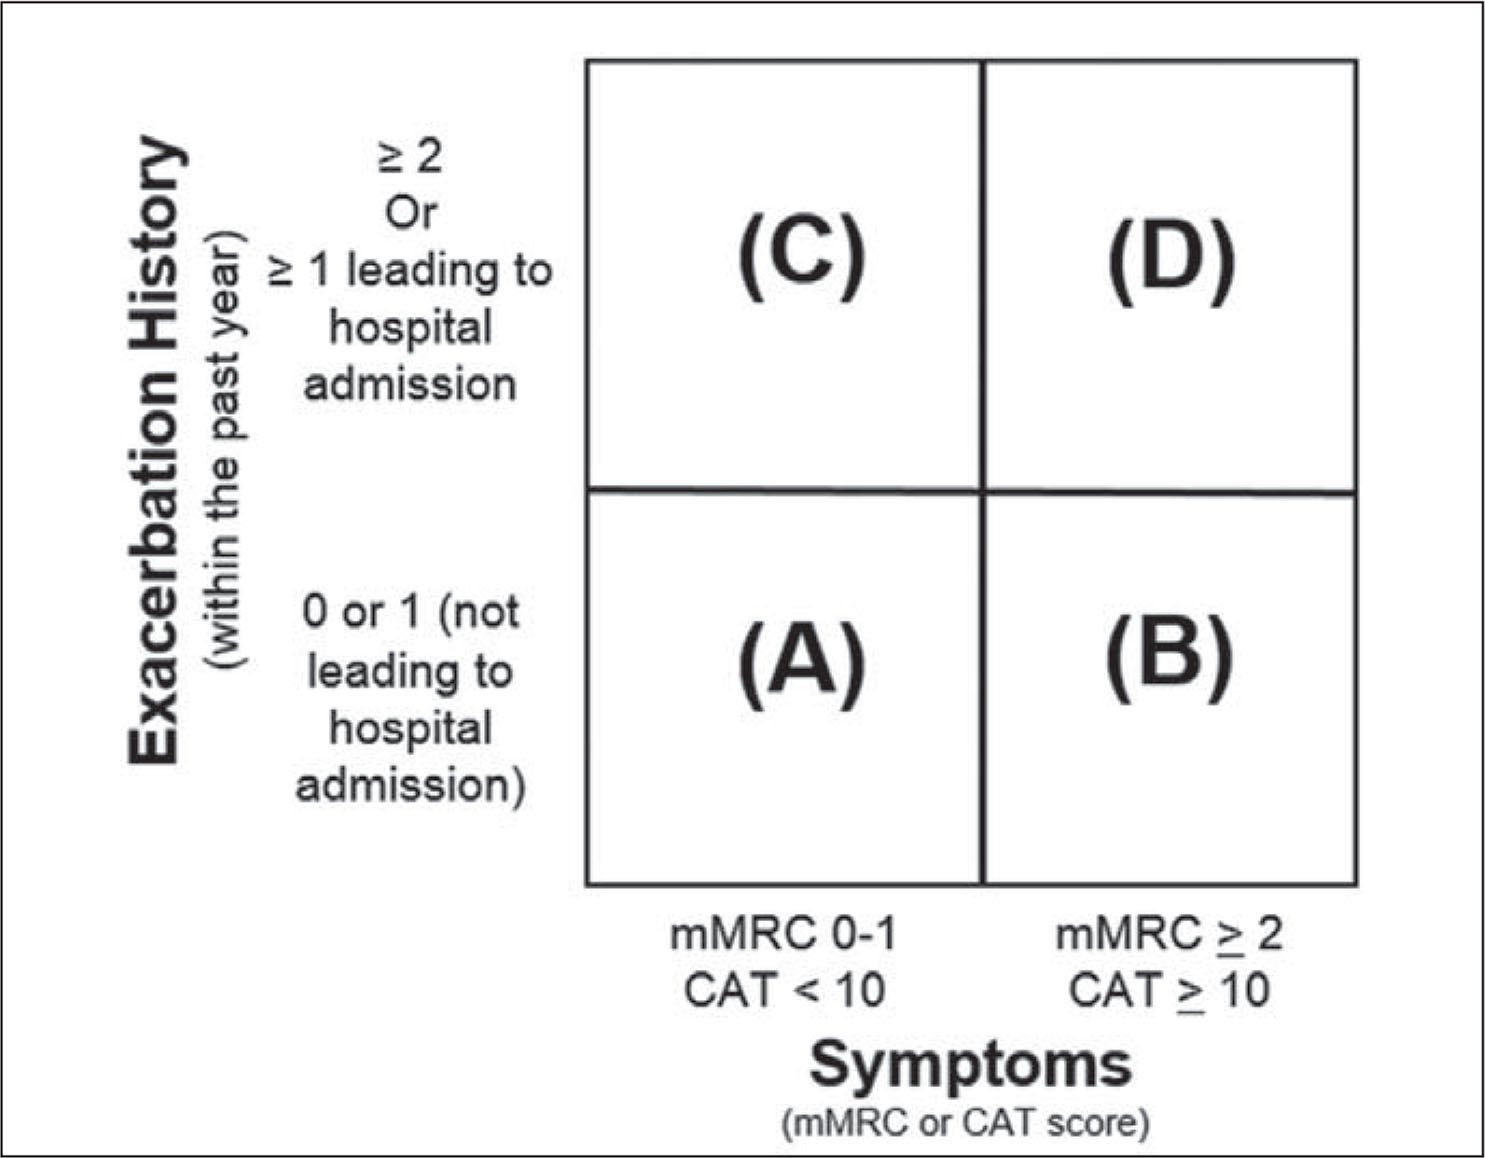 ABCD assessment of chronic obstructive pulmonary disease (COPD) (American Thoracic Society, 2016; Global Initiative for Chronic Obstructive Lung Disease, 2018; Mahler, n.d.).Note. mMRC = Modified Medical Research Council Dyspnea Scale; CAT = COPD assessment test.Adapted from Global Initiative for Chronic Obstructive Lung Disease. (2017). Pocket guide to COPD diagnosis, management, and prevention. Retrieved from https://goldcopd.org/wp-content/uploads/2016/12/wms-GOLD-2017-Pocket-Guide.pdf